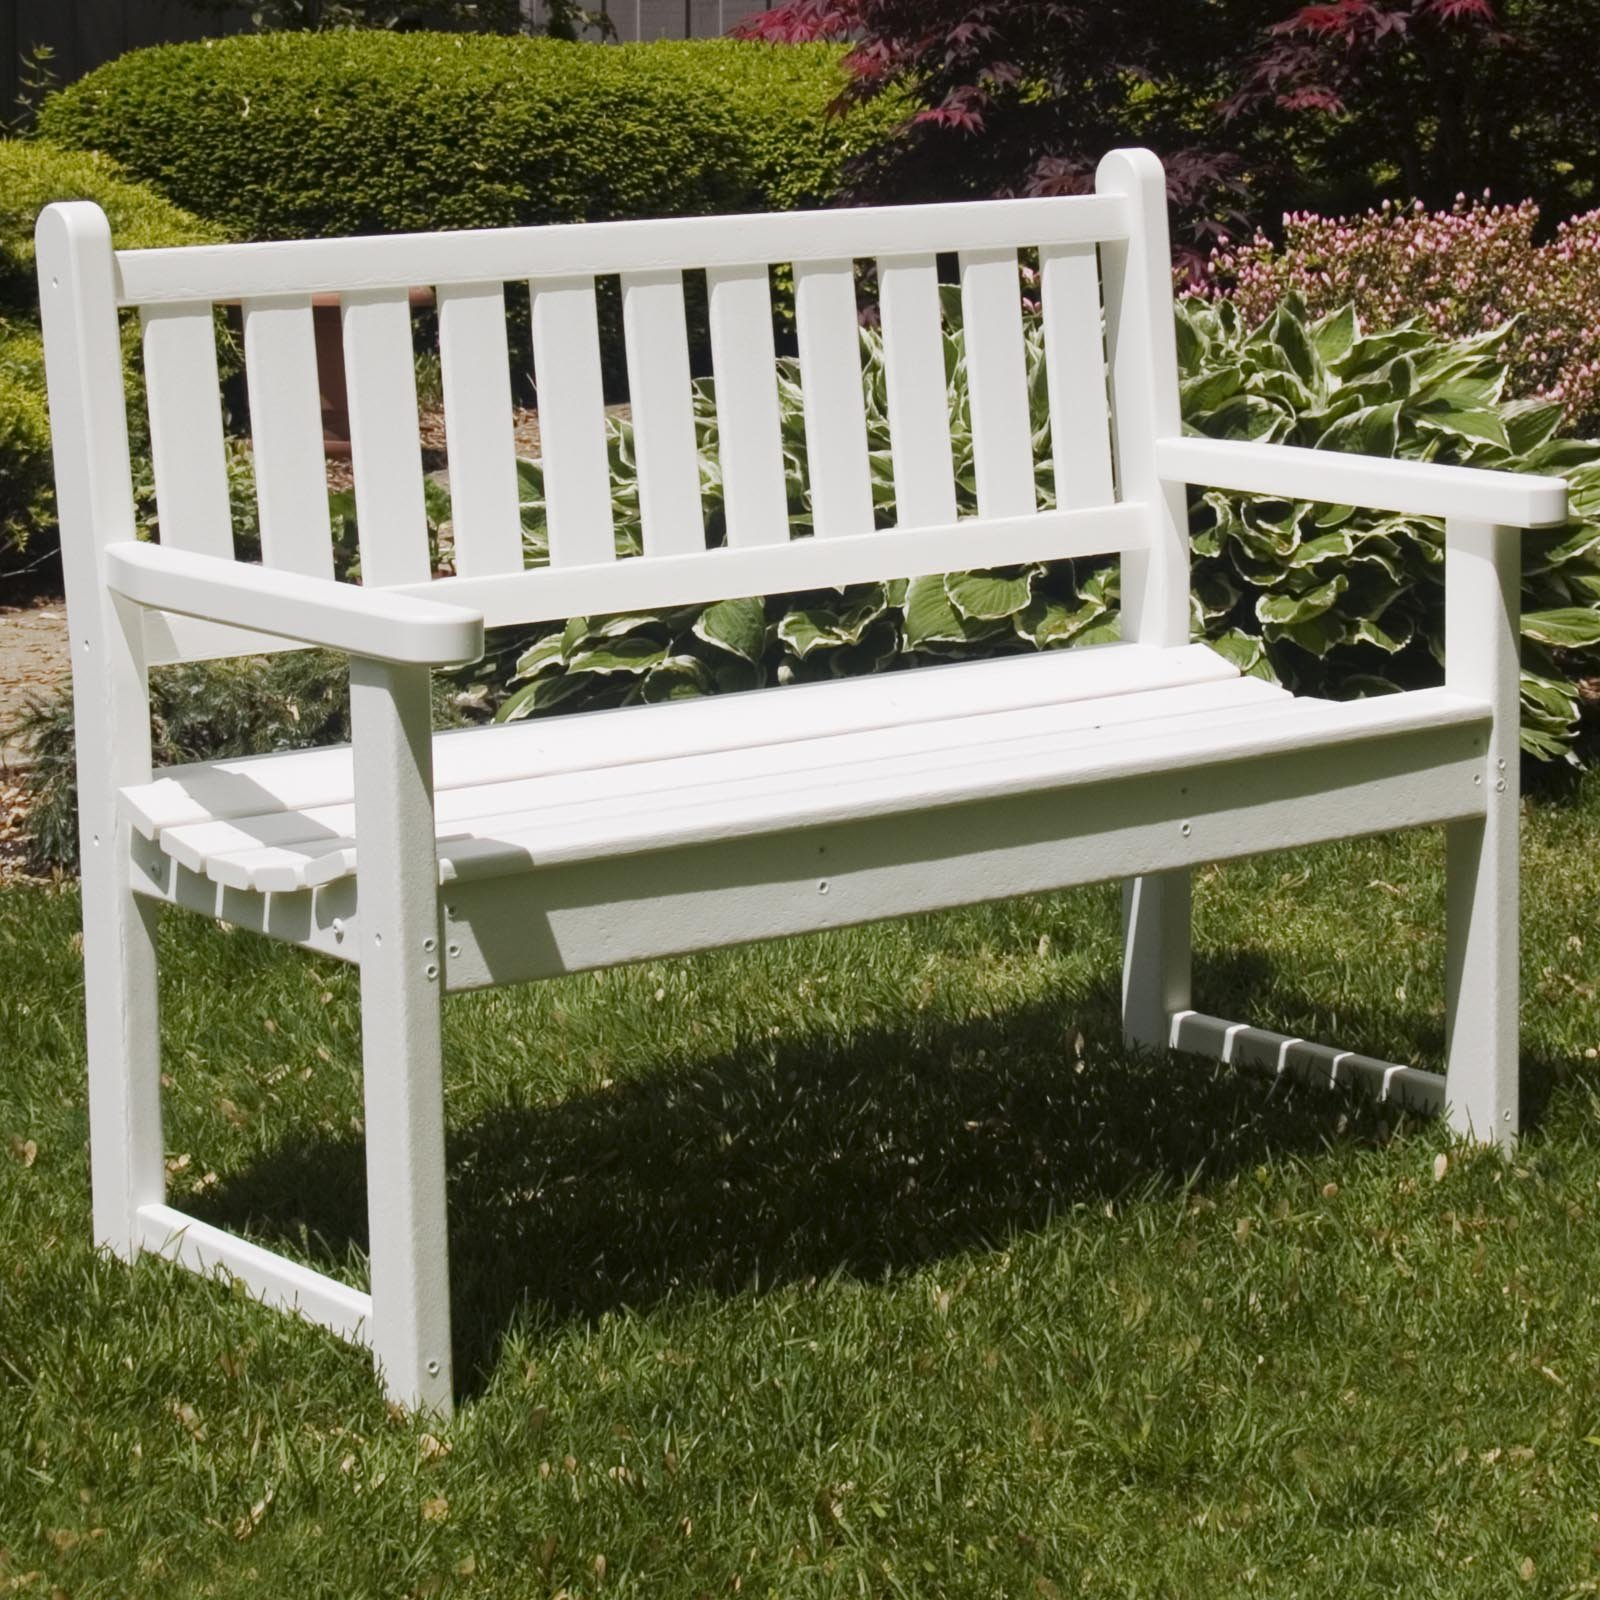 plastic garden furniture furniture On plastic garden furniture